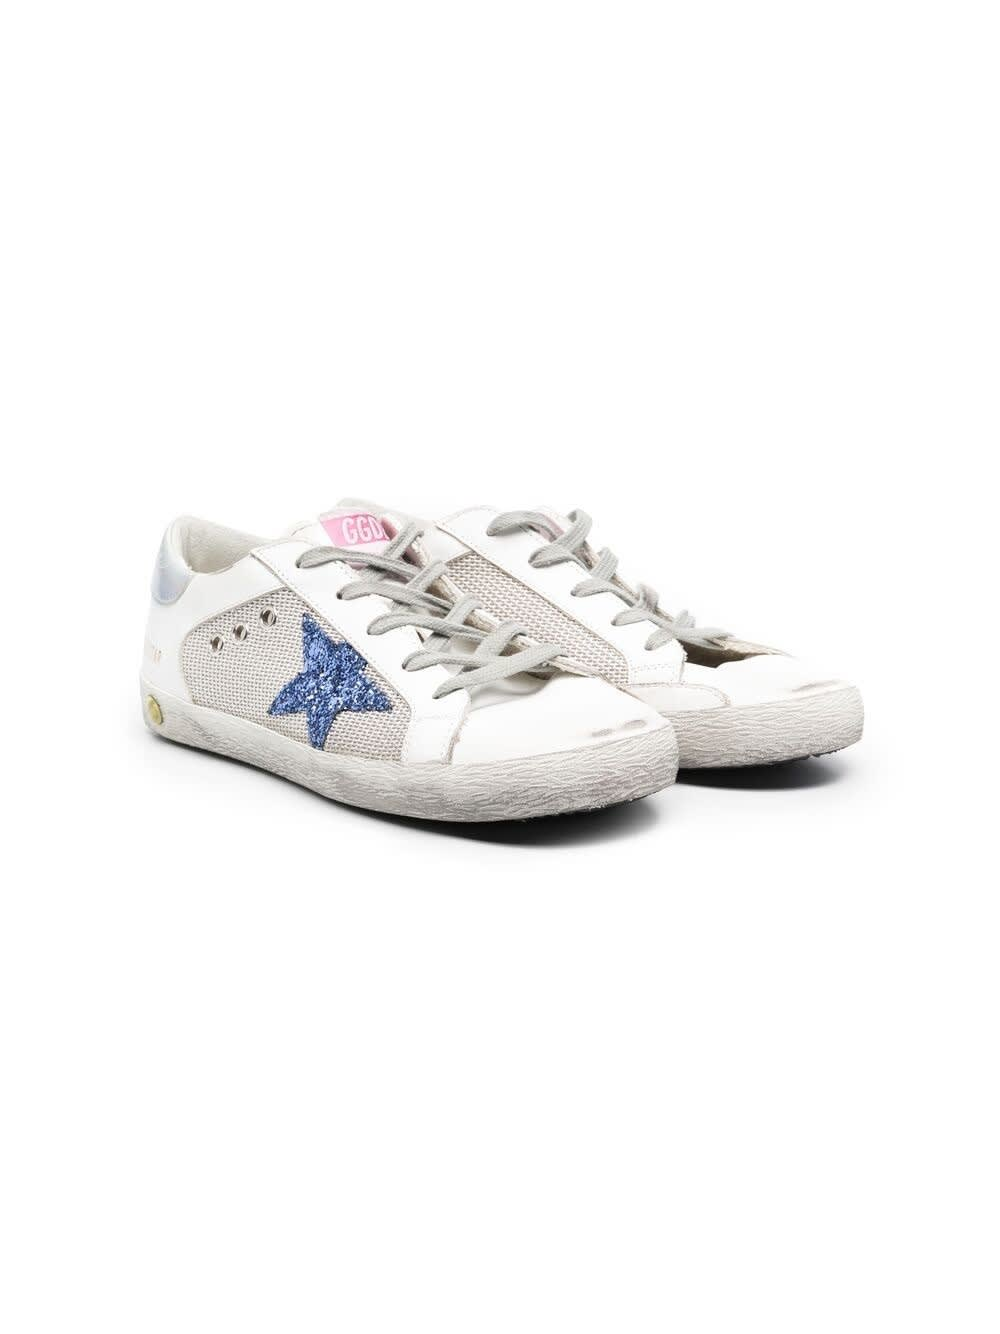 Golden Goose Sneakers With Laces And Glitter Star